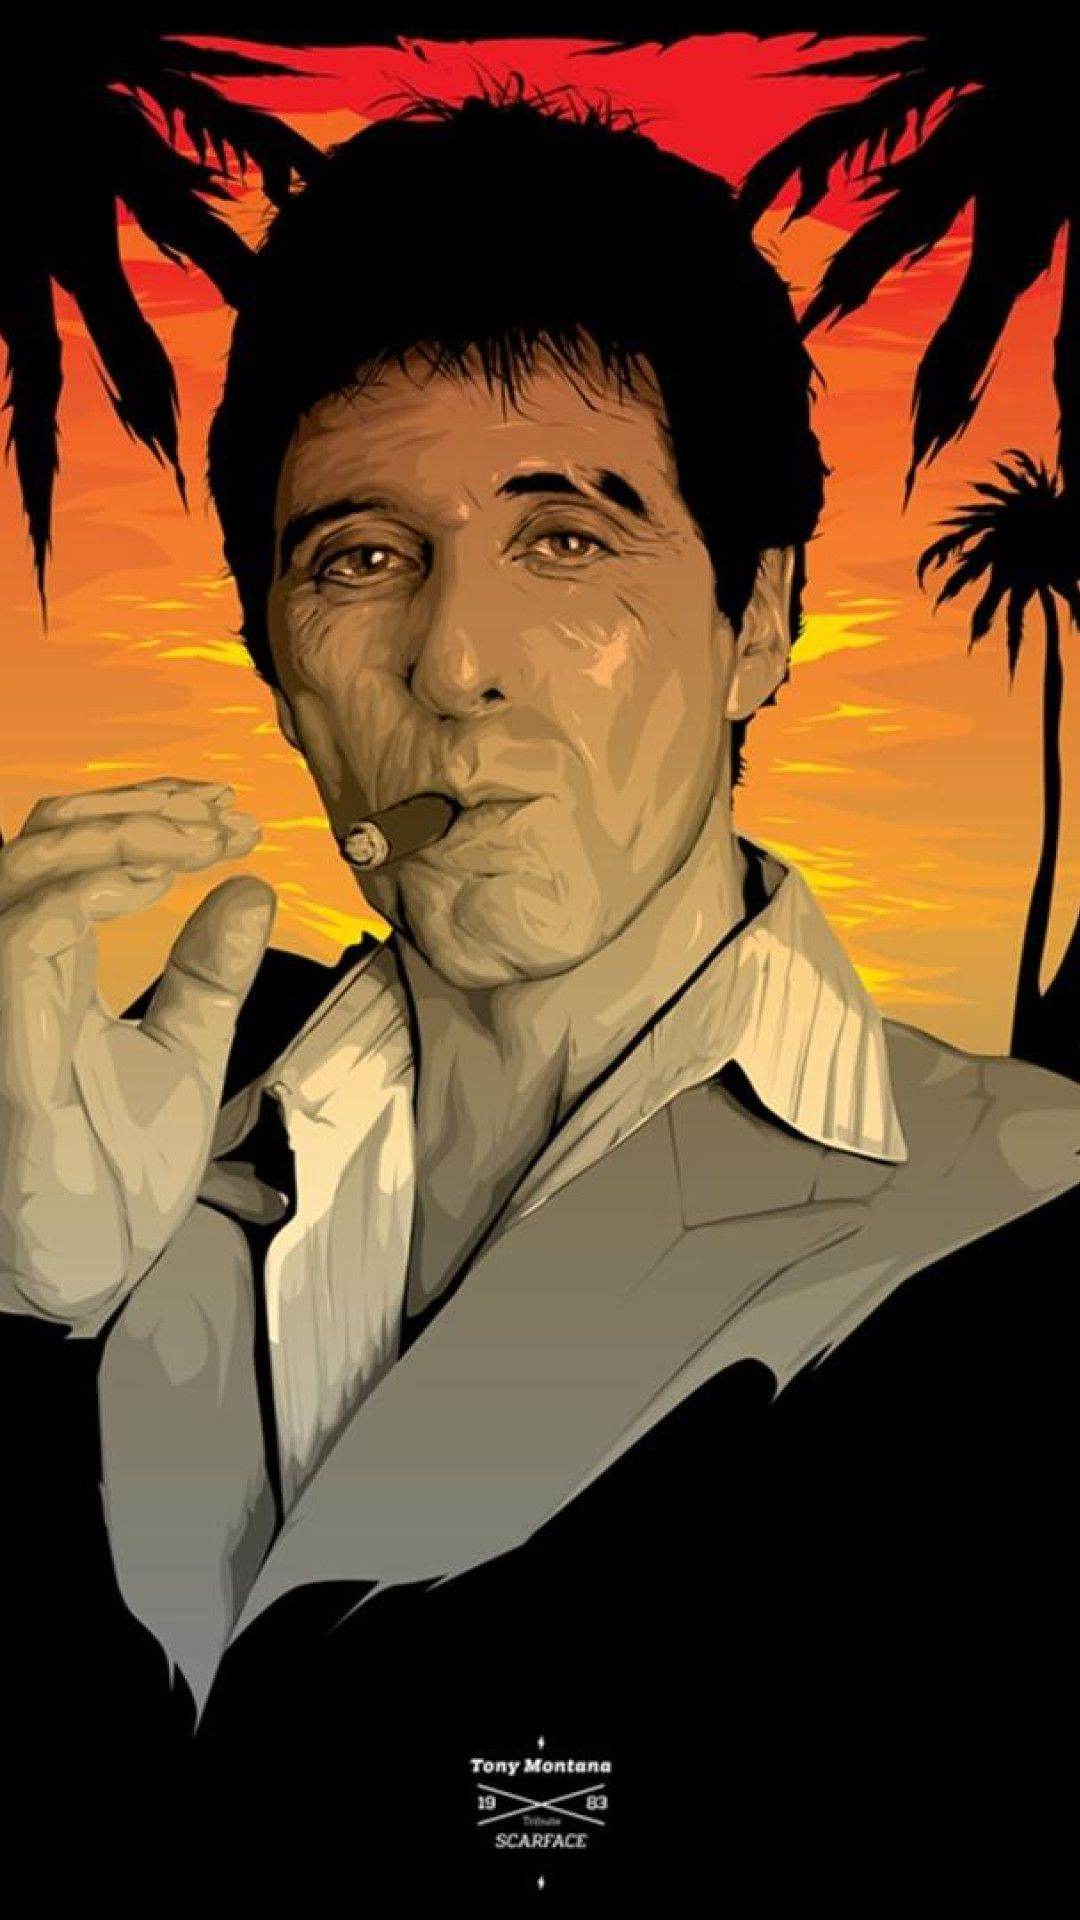 Scarface iphone wallpapers top free scarface iphone - Scarface wallpaper iphone ...